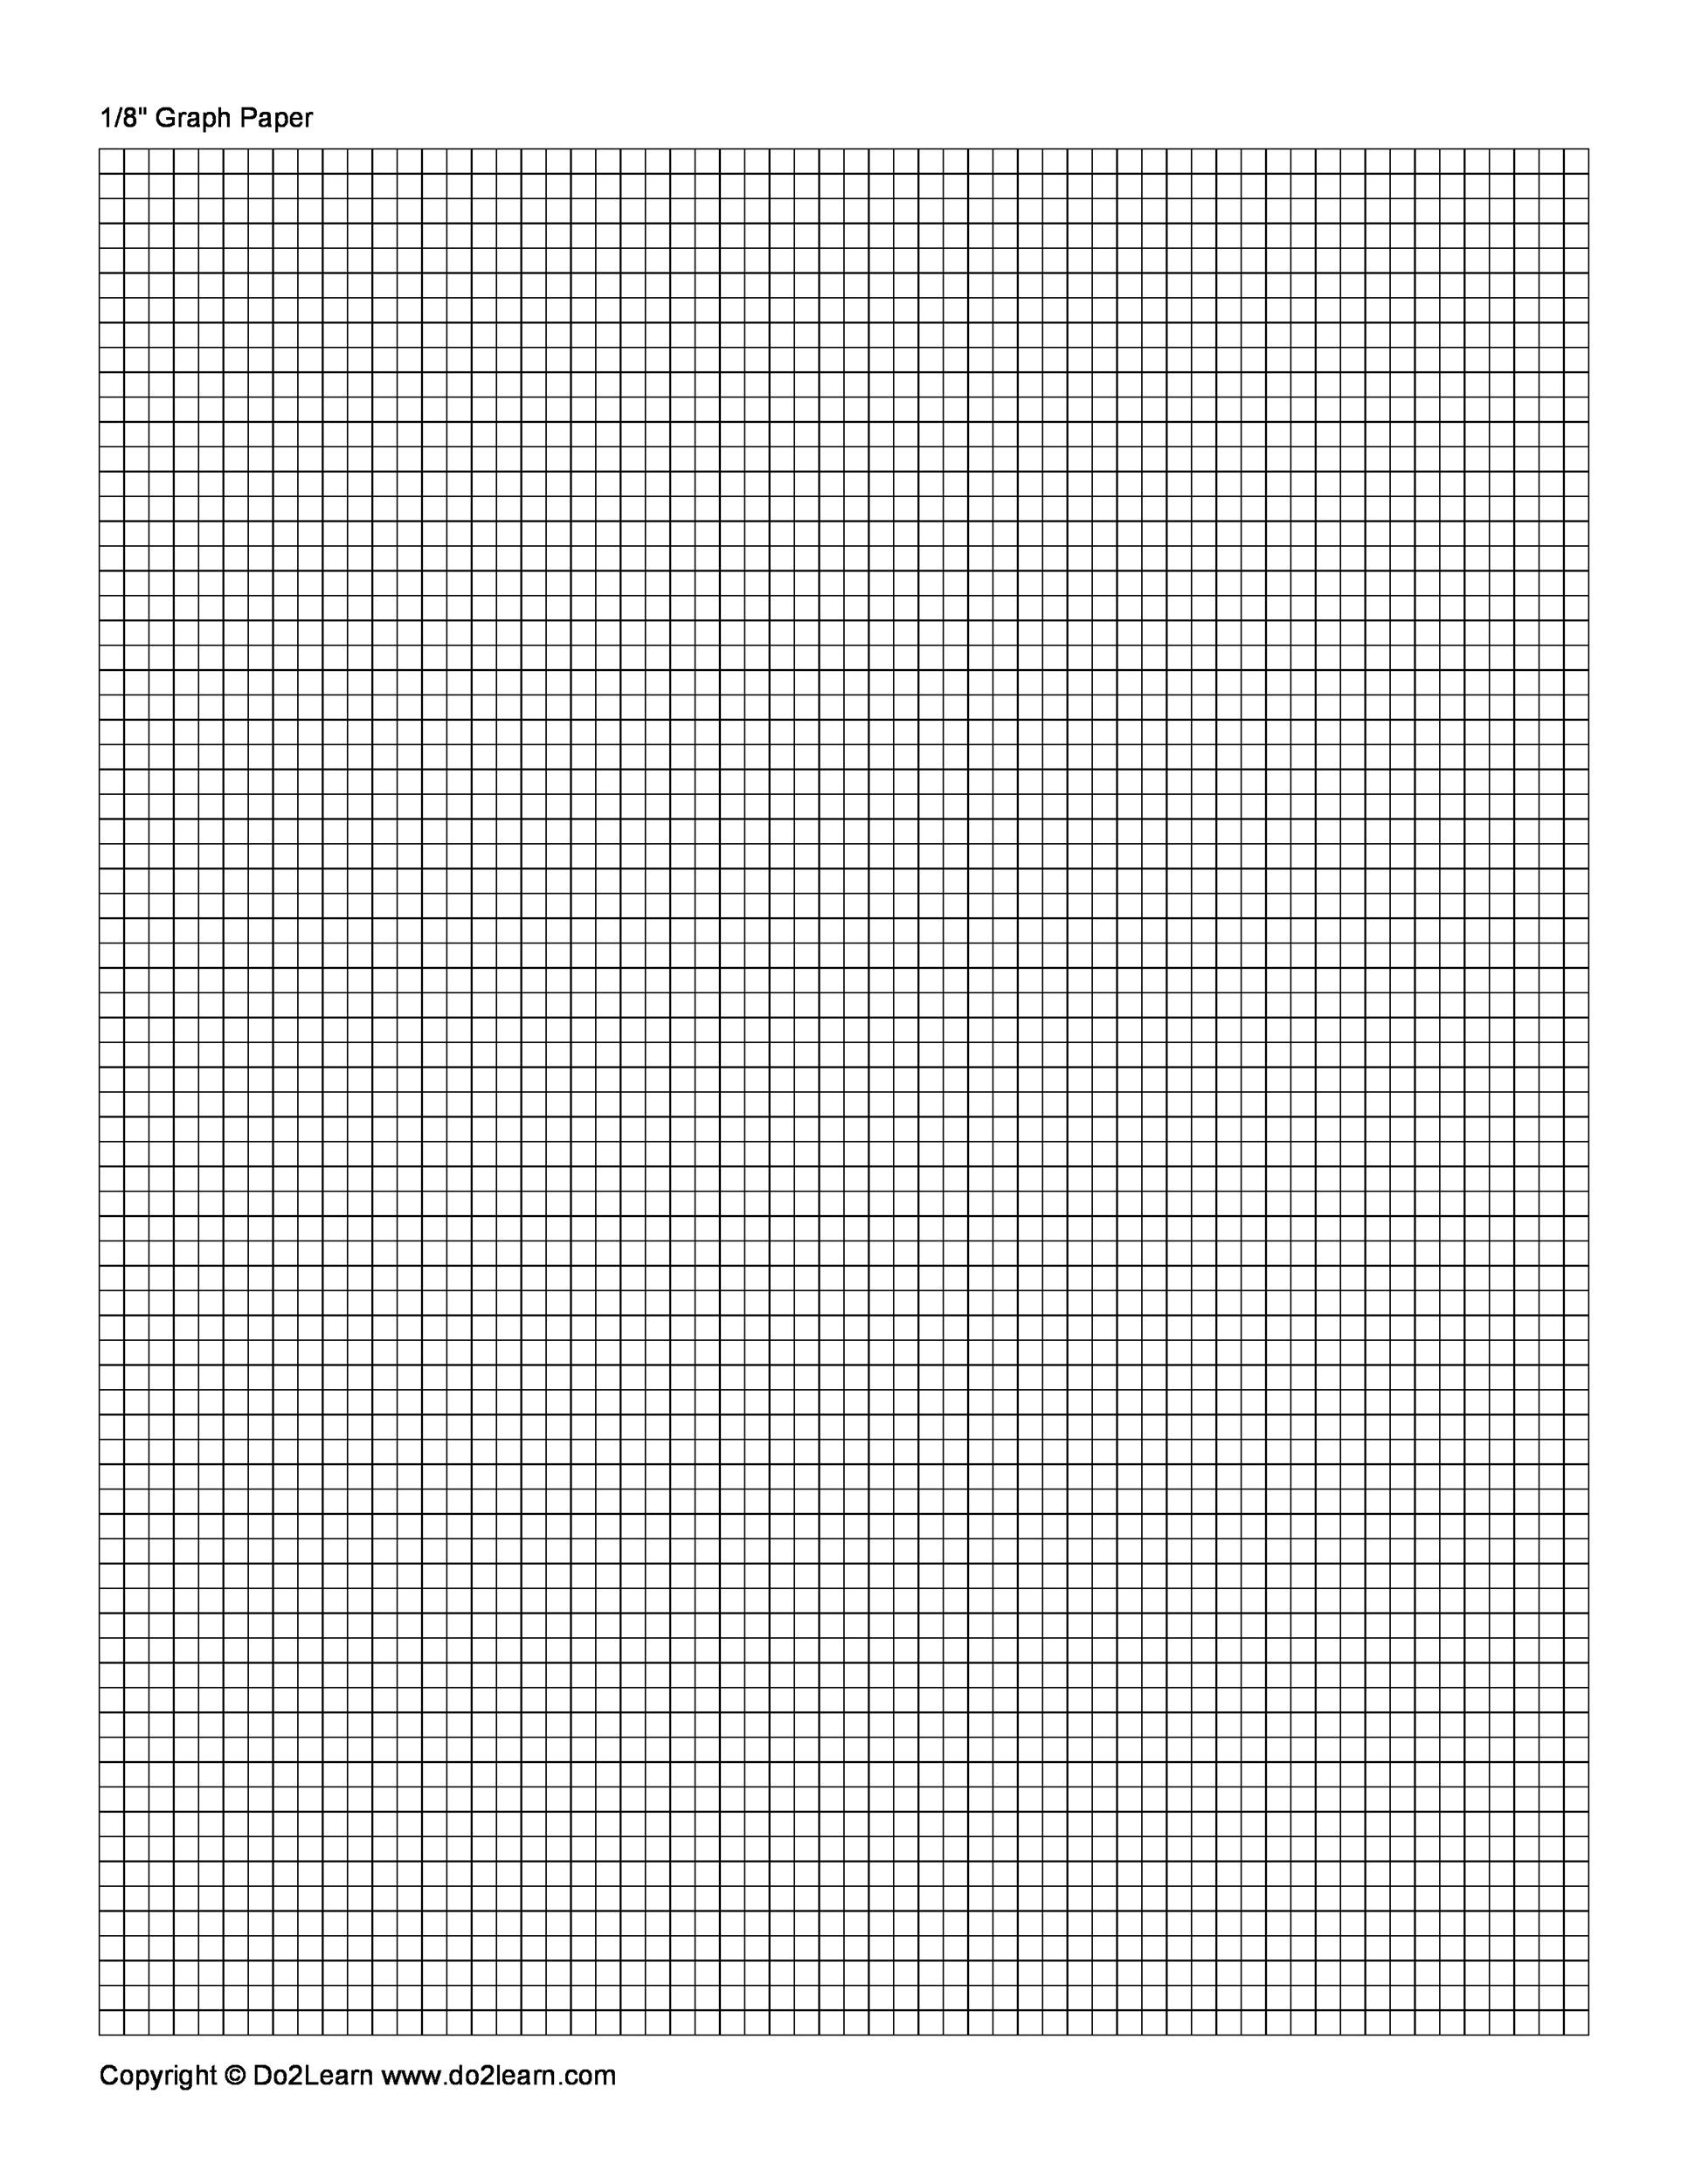 worksheet A Blank Graph 30 free printable graph paper templates word pdf template lab 01